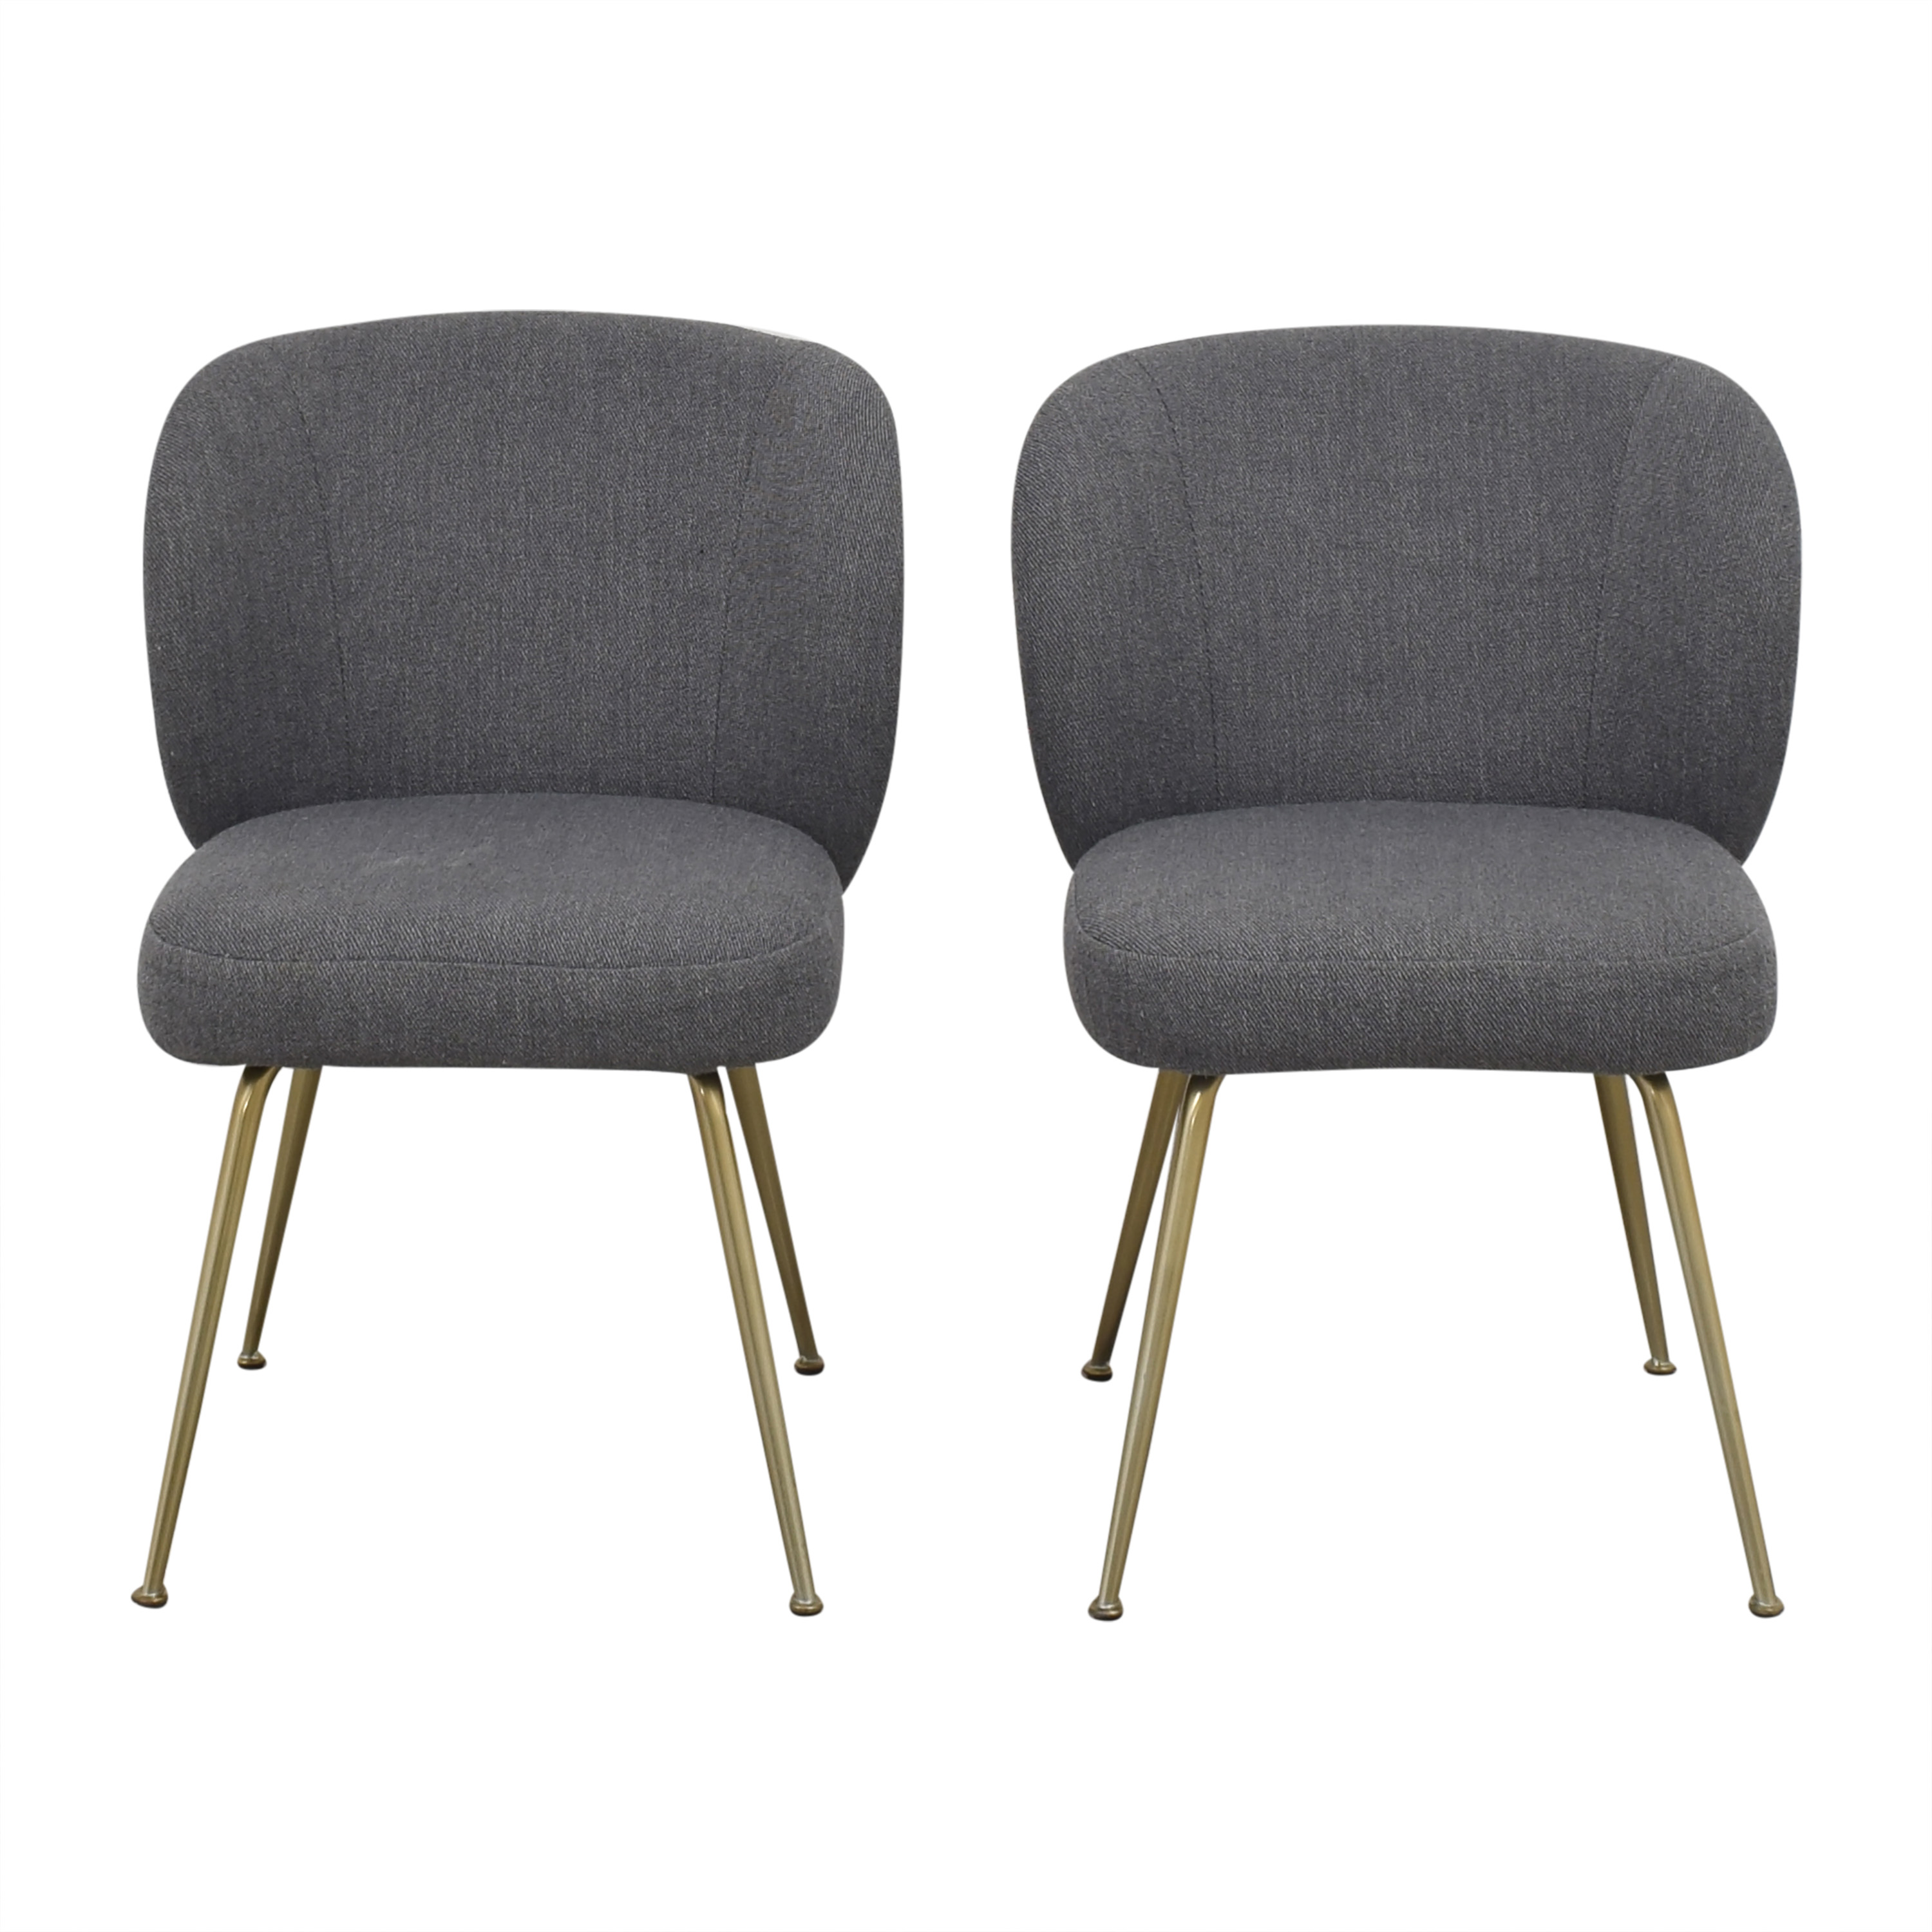 West Elm Greer Upholstered Dining Chairs / Chairs